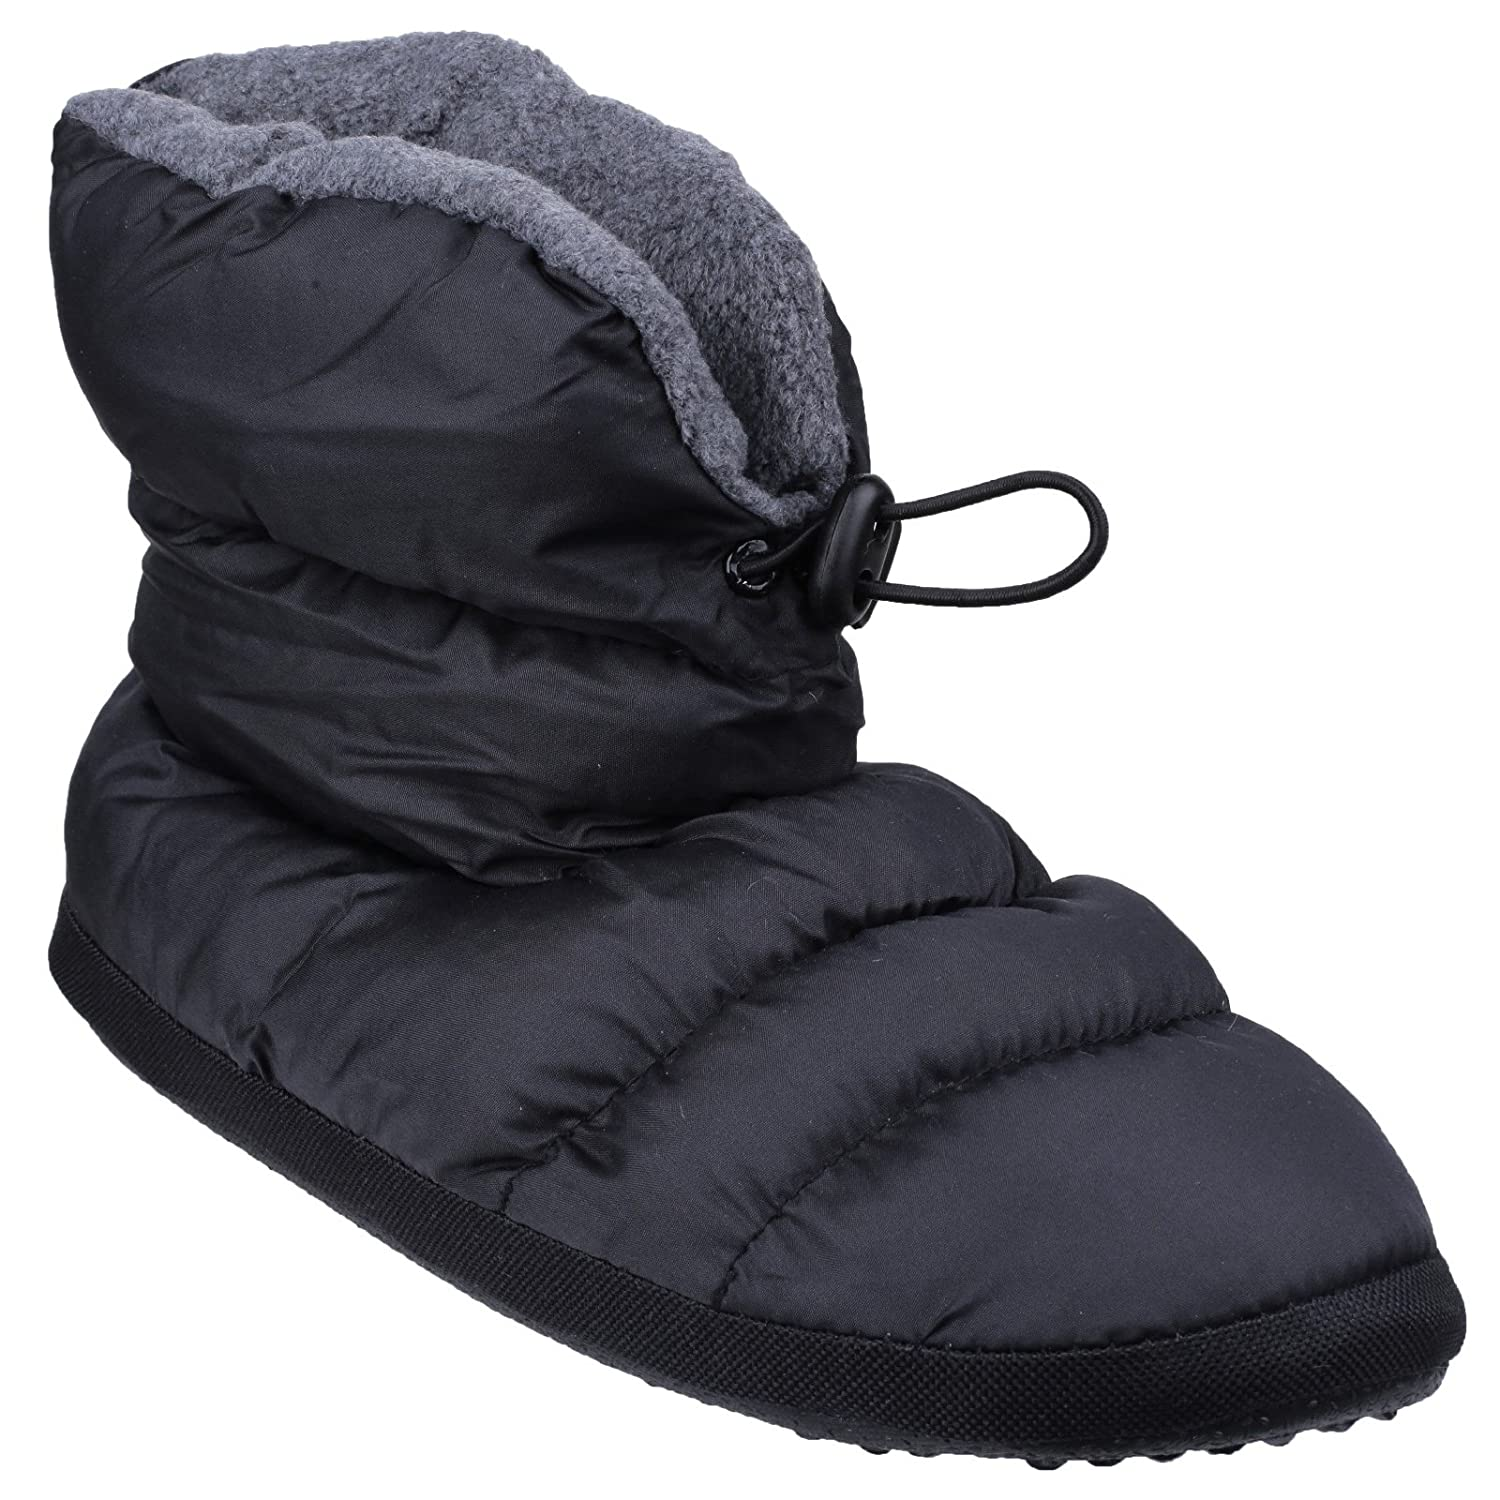 Cotswold Womens Camping Boot Textile Slipper Boots Amazoncouk Shoes   Bags